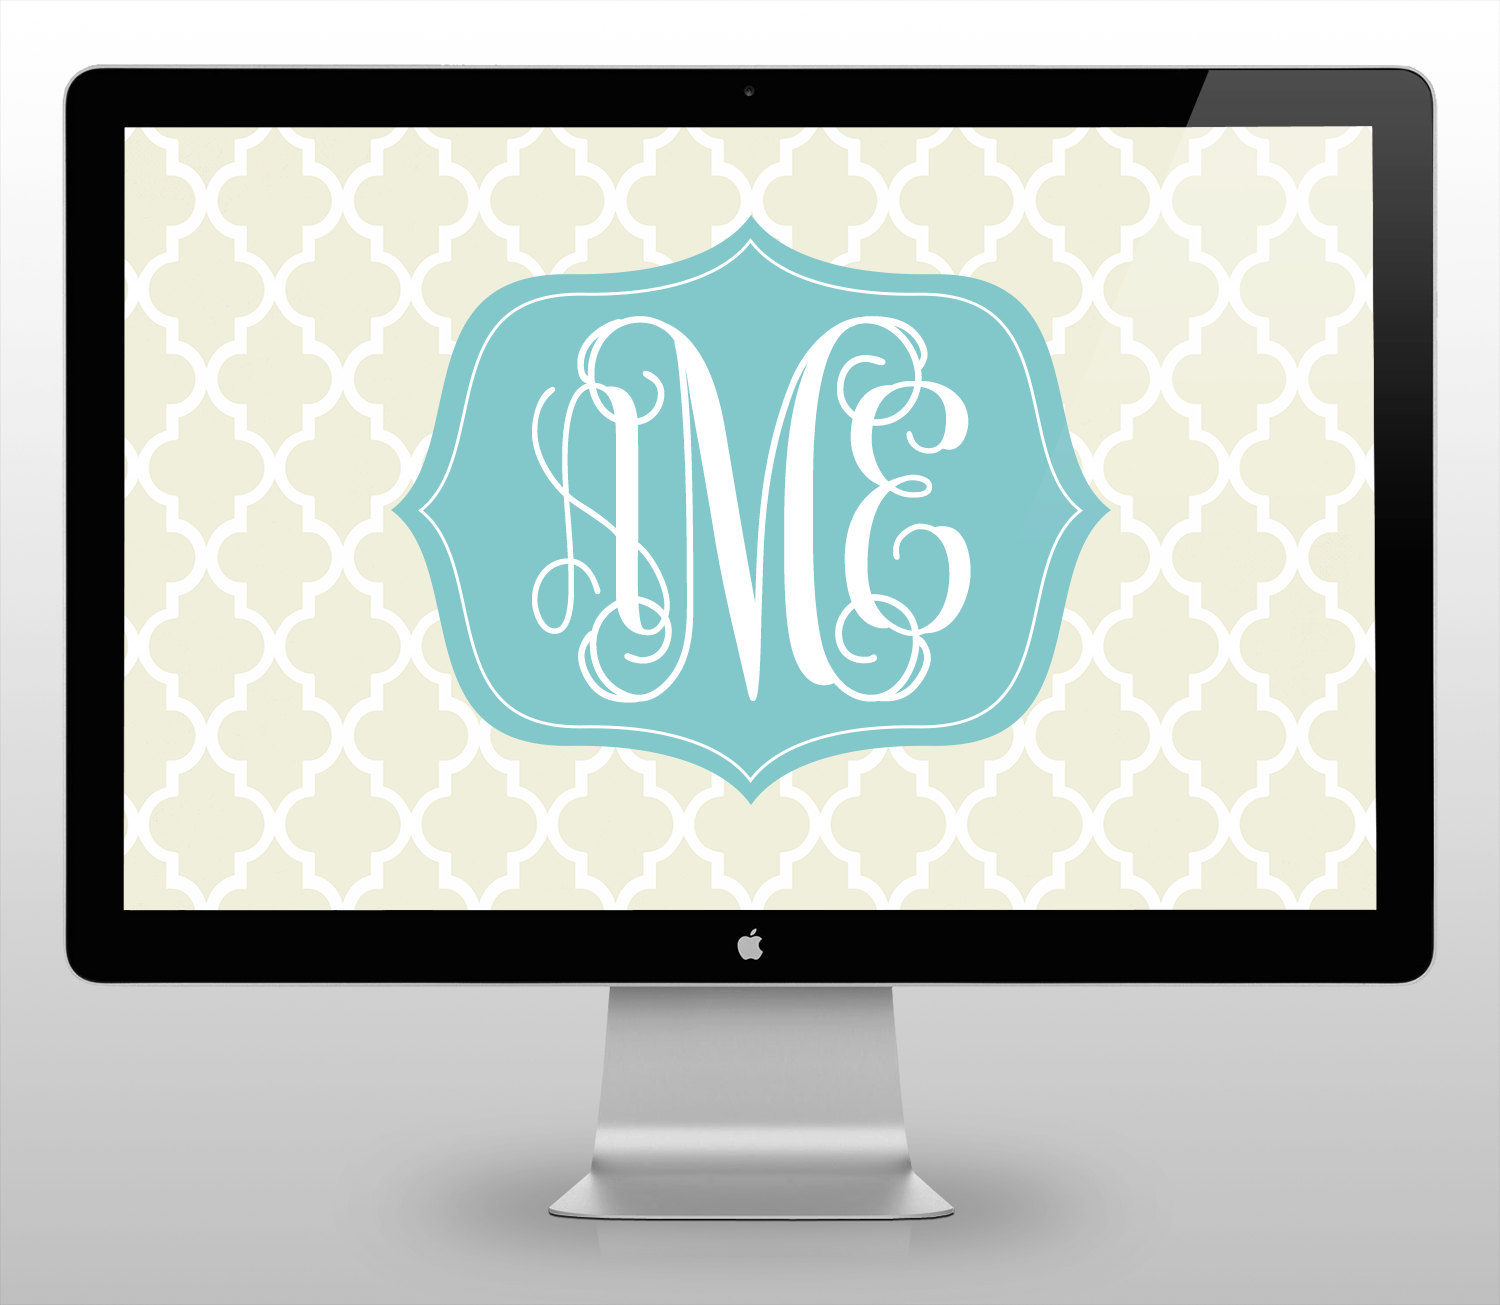 moroccan monogram desktop wallpaper from monogramsbyks 1500x1305